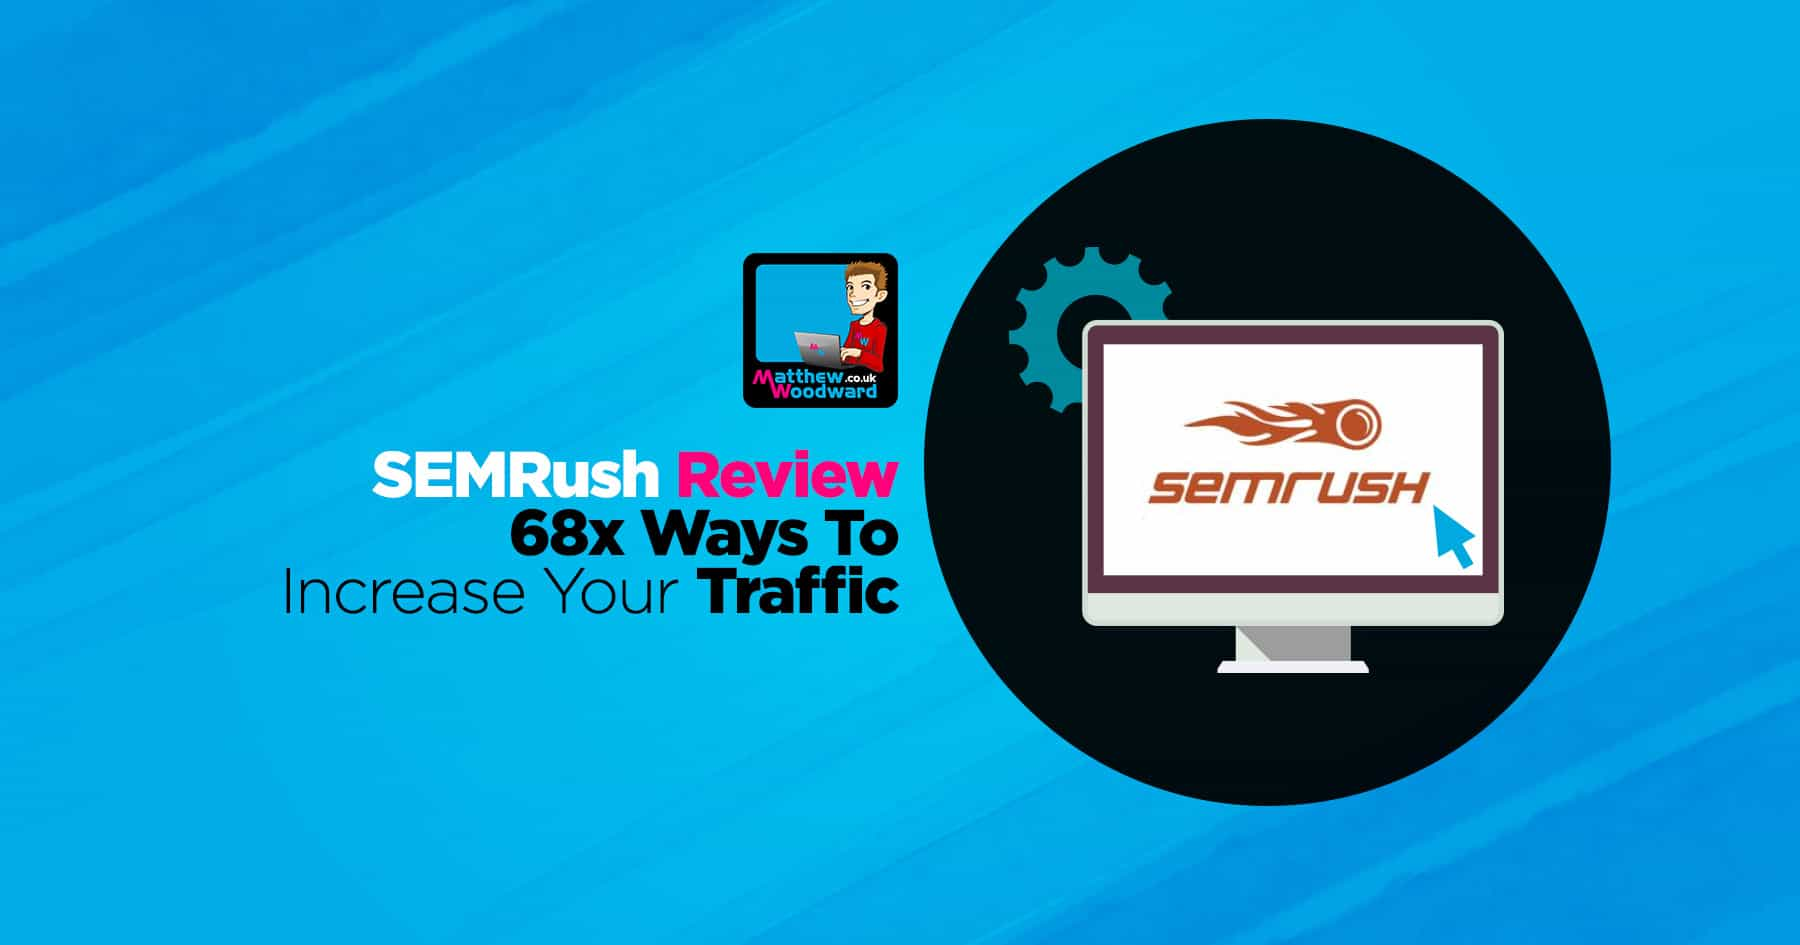 Seo Software Semrush  Outlet Deals 2020